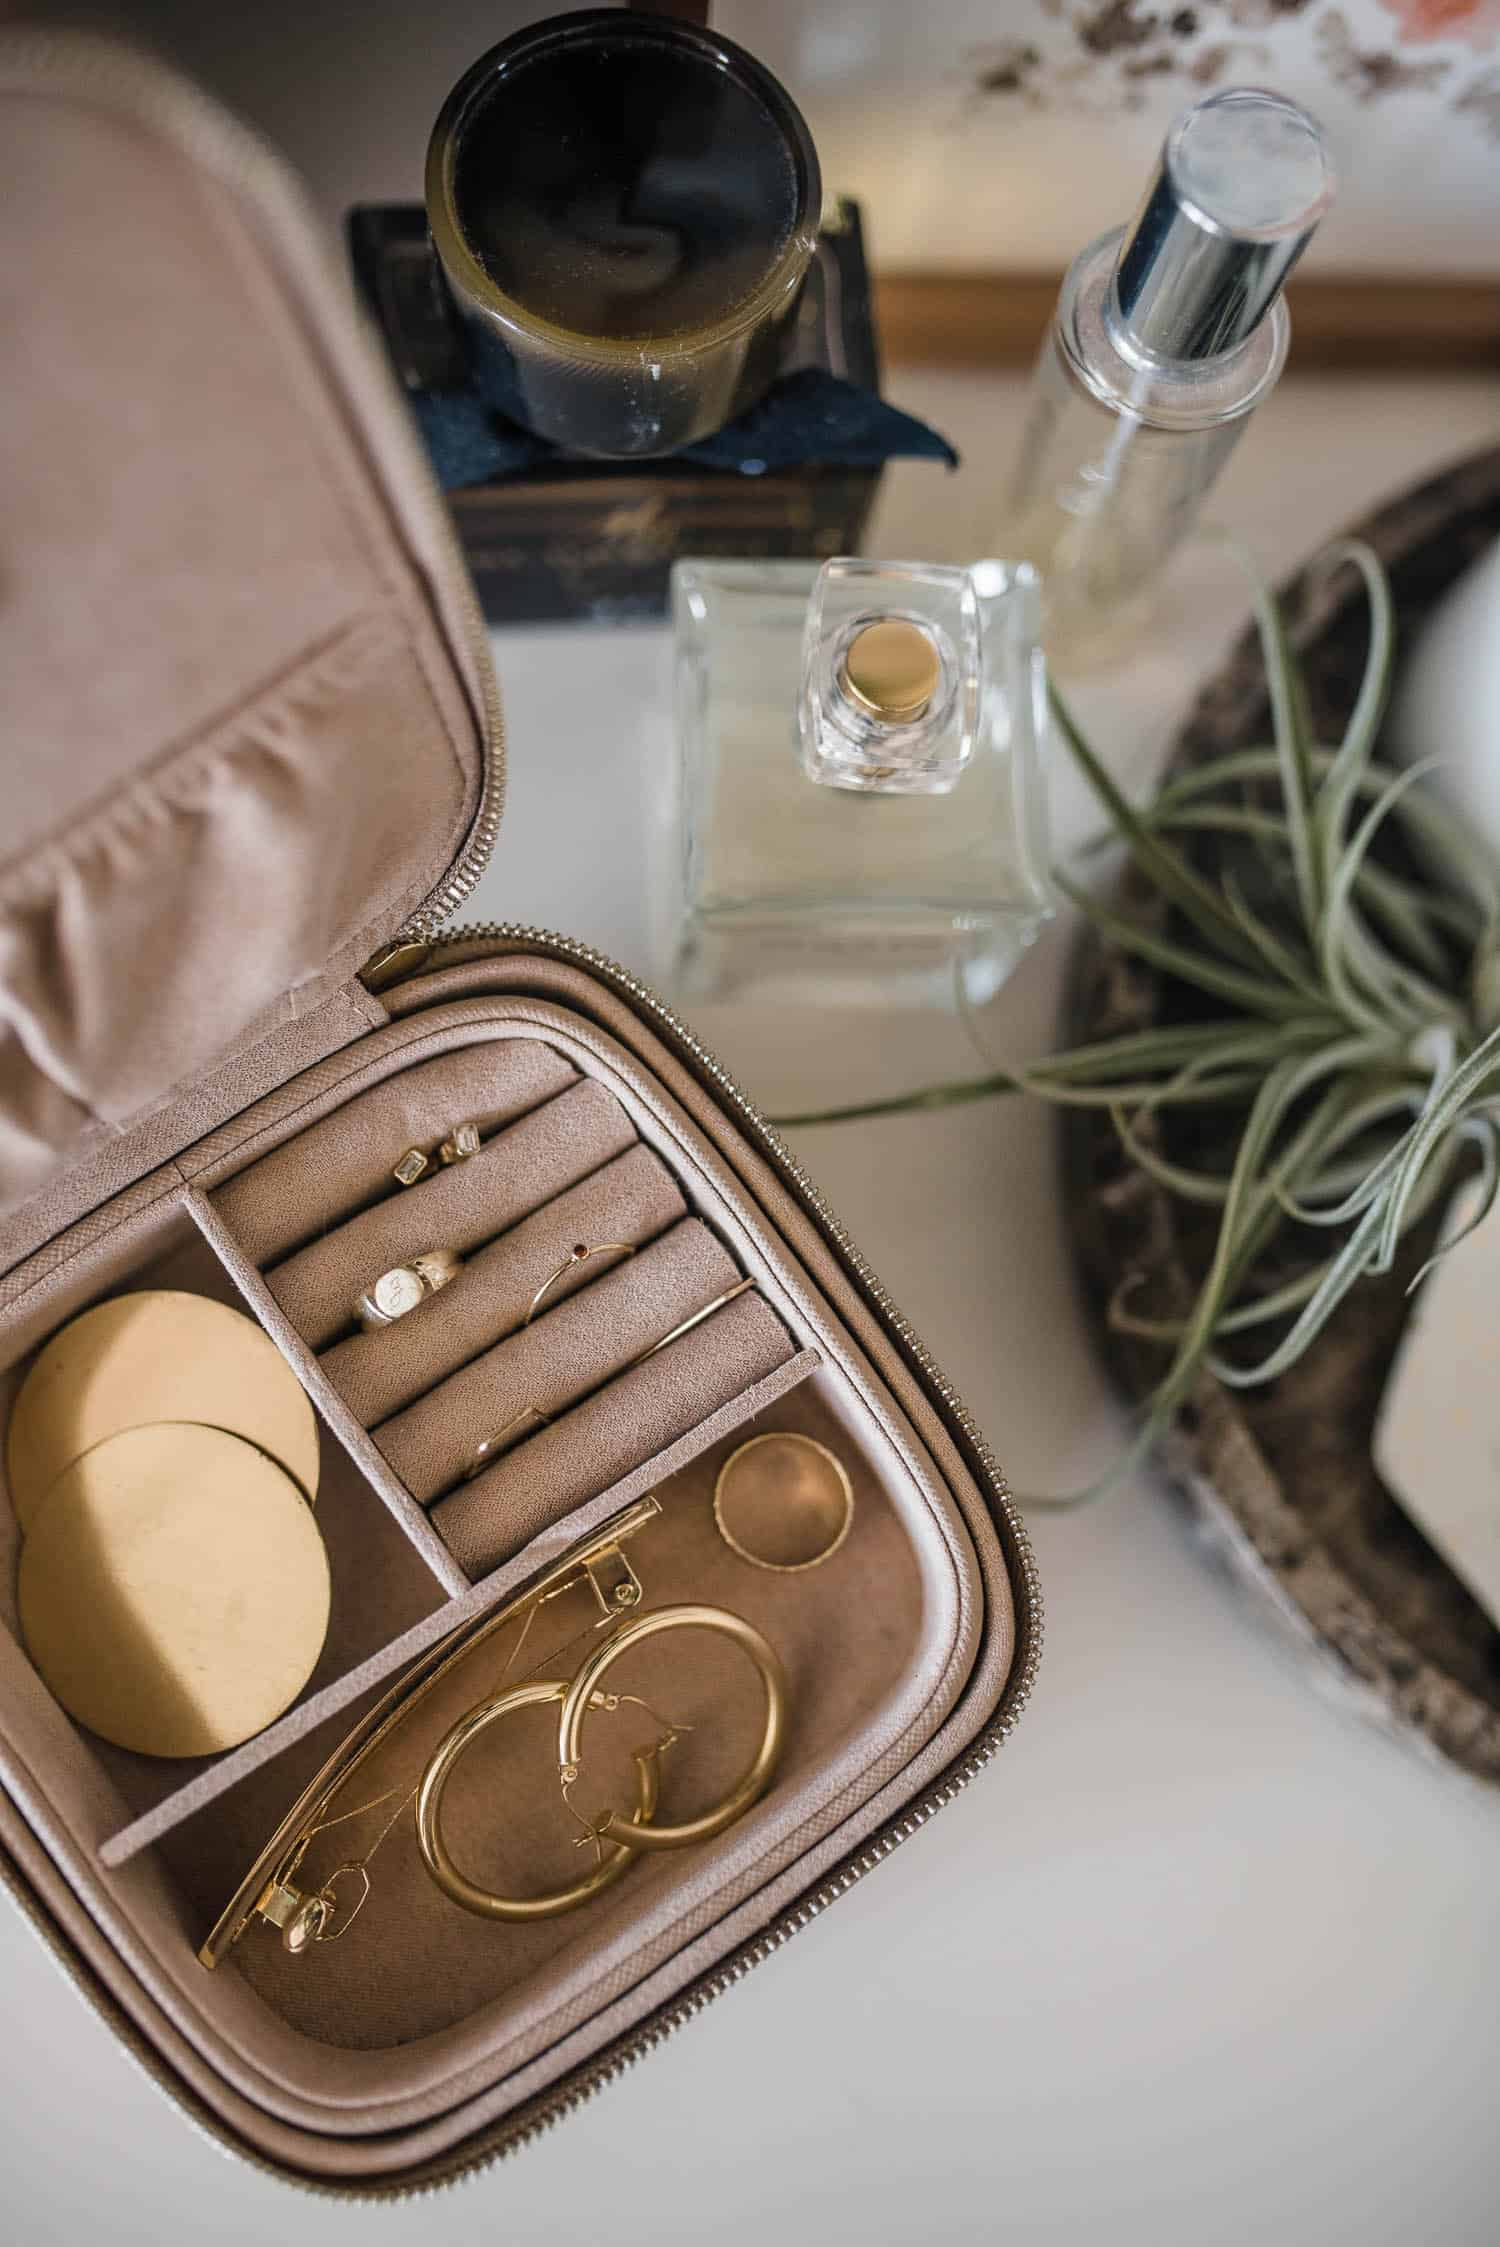 The Daily Edited Travel Jewelry Case